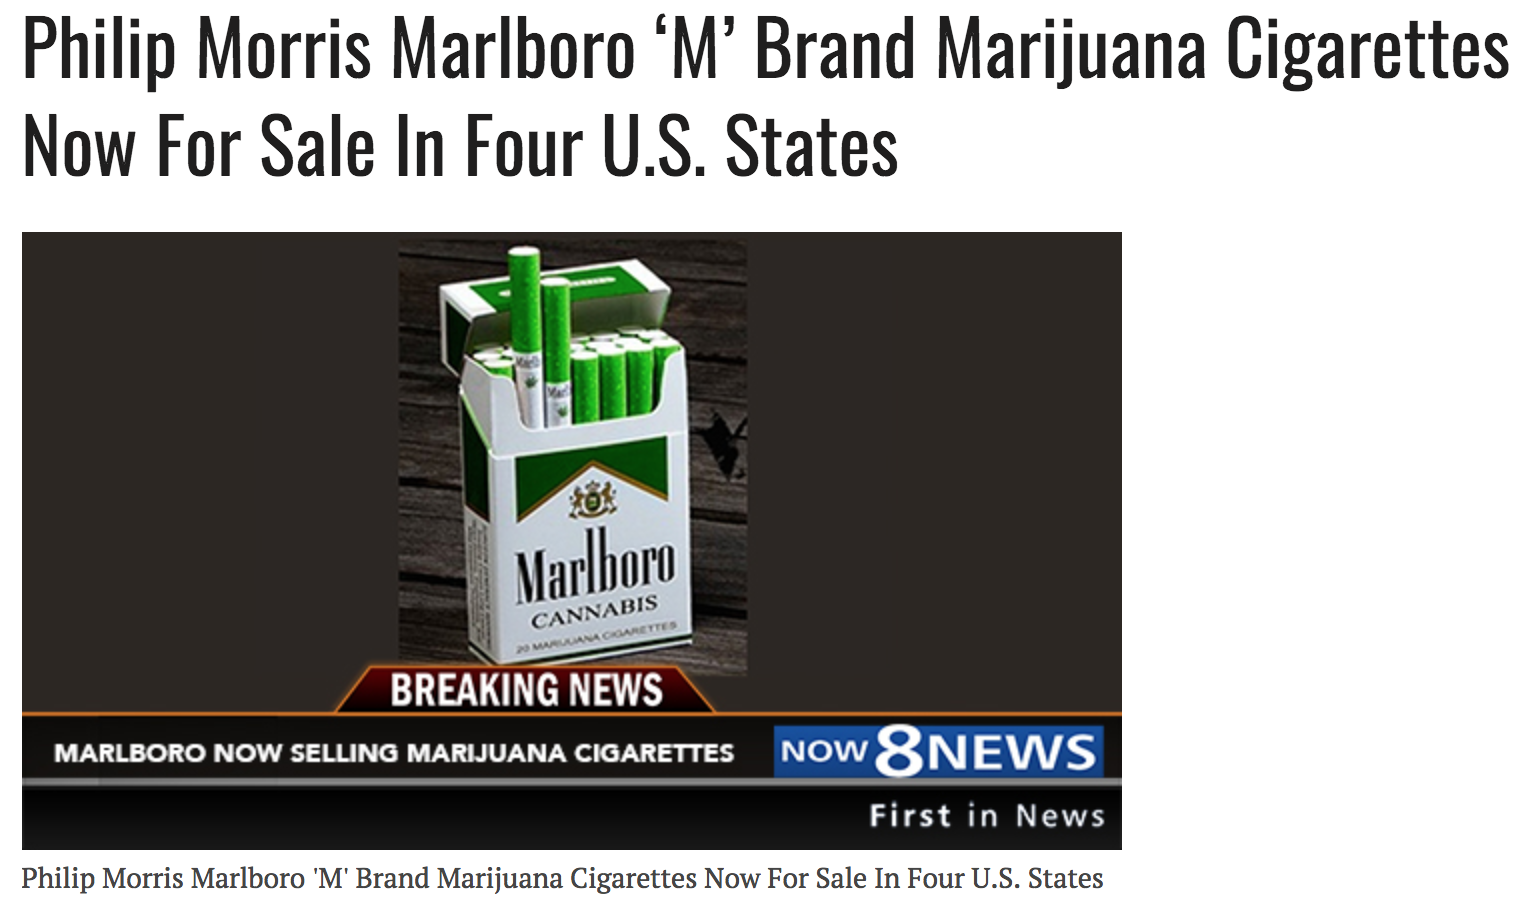 Philip morris marlboro 'm' brand marijuana cigarettes now for sale in four u.s. states